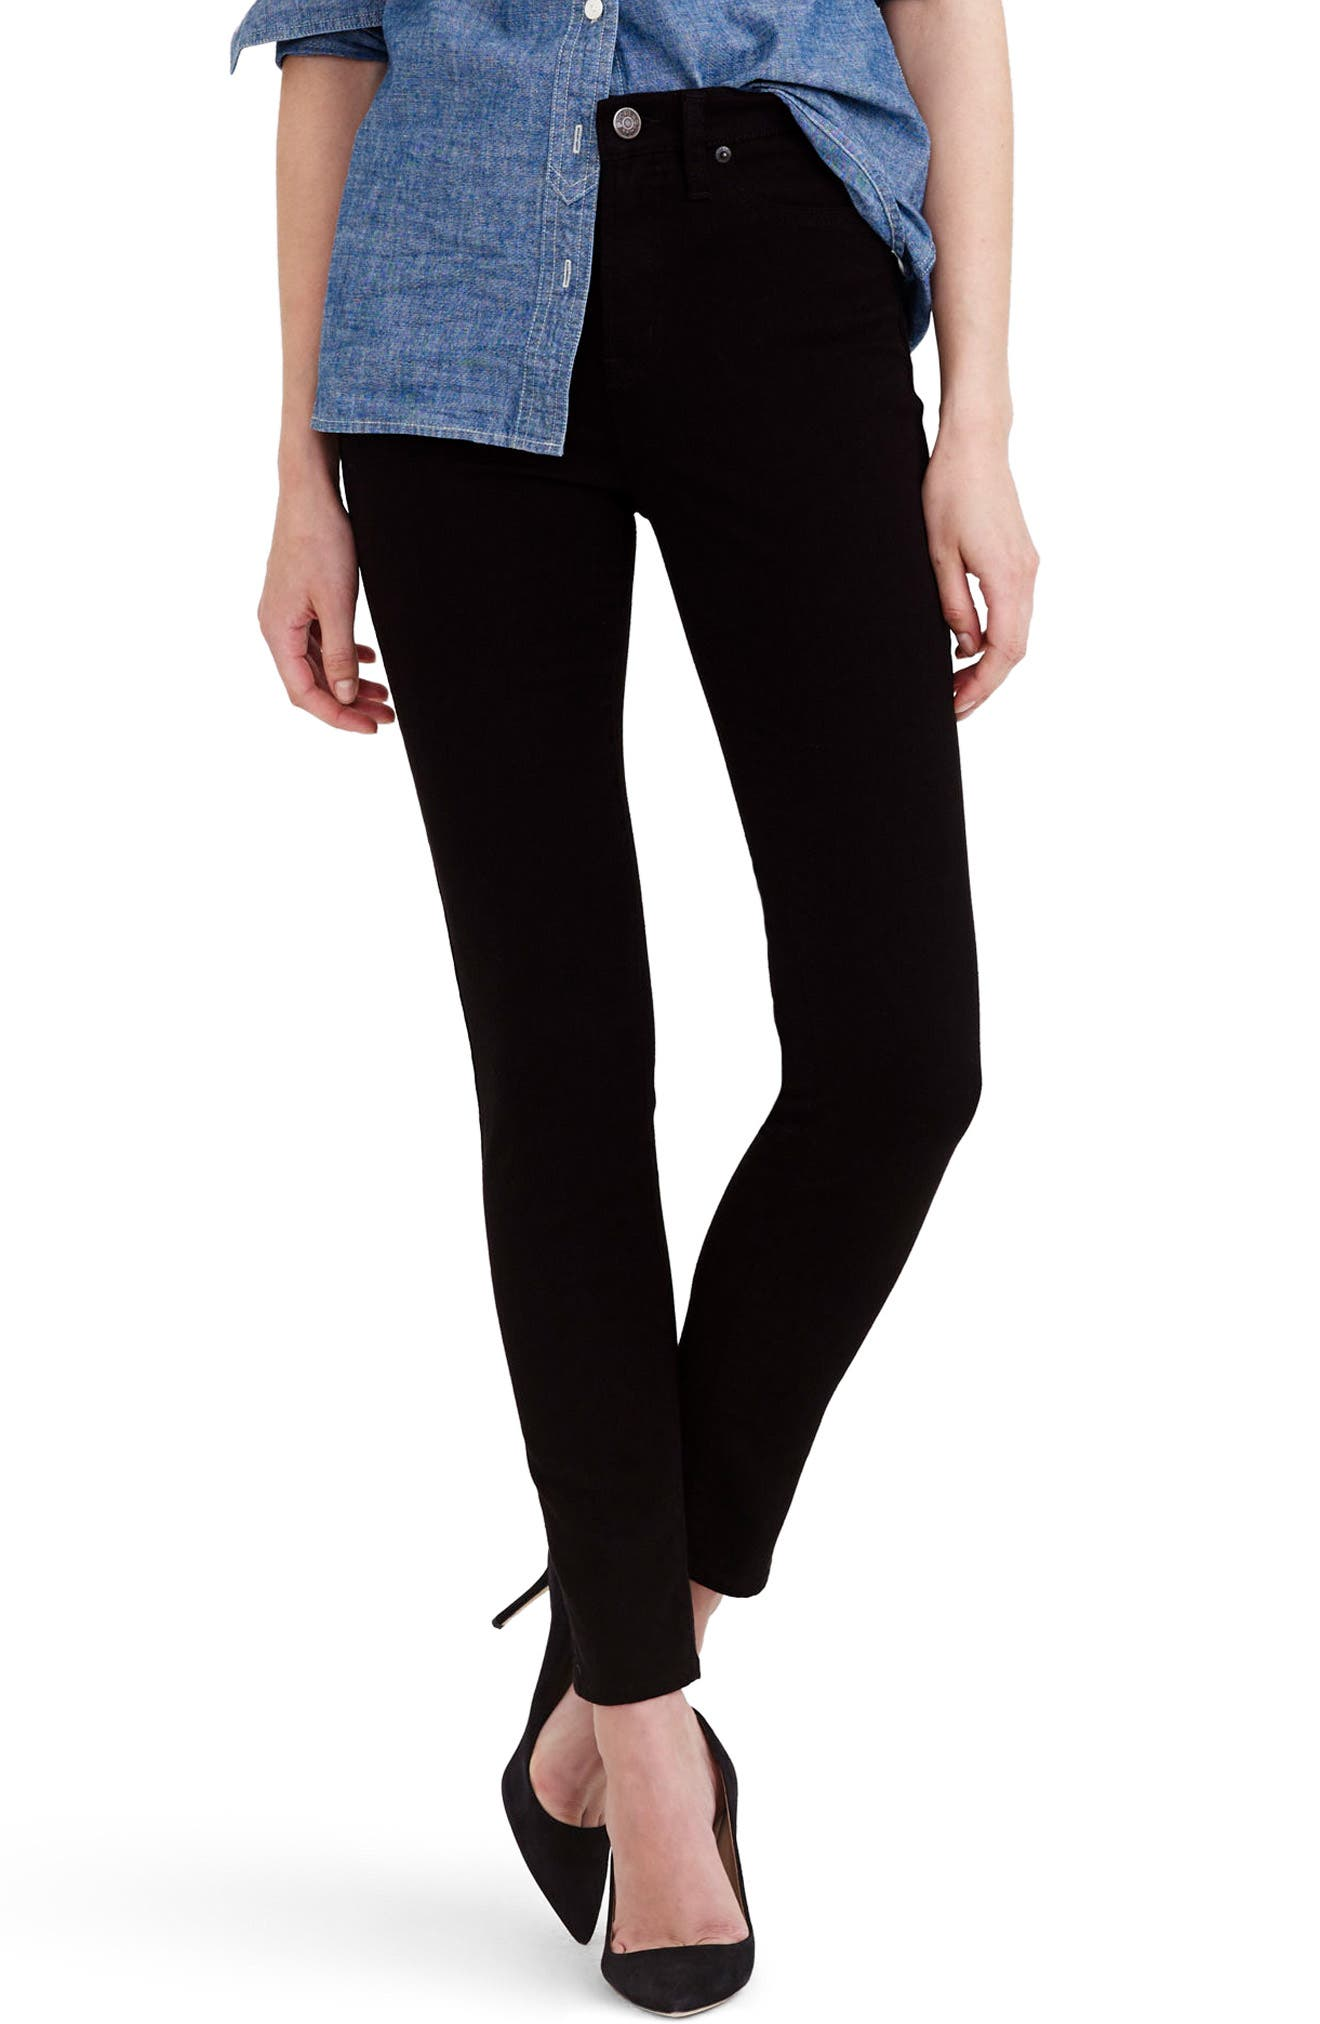 J. CREW J.Crew Lookout High Rise Jeans